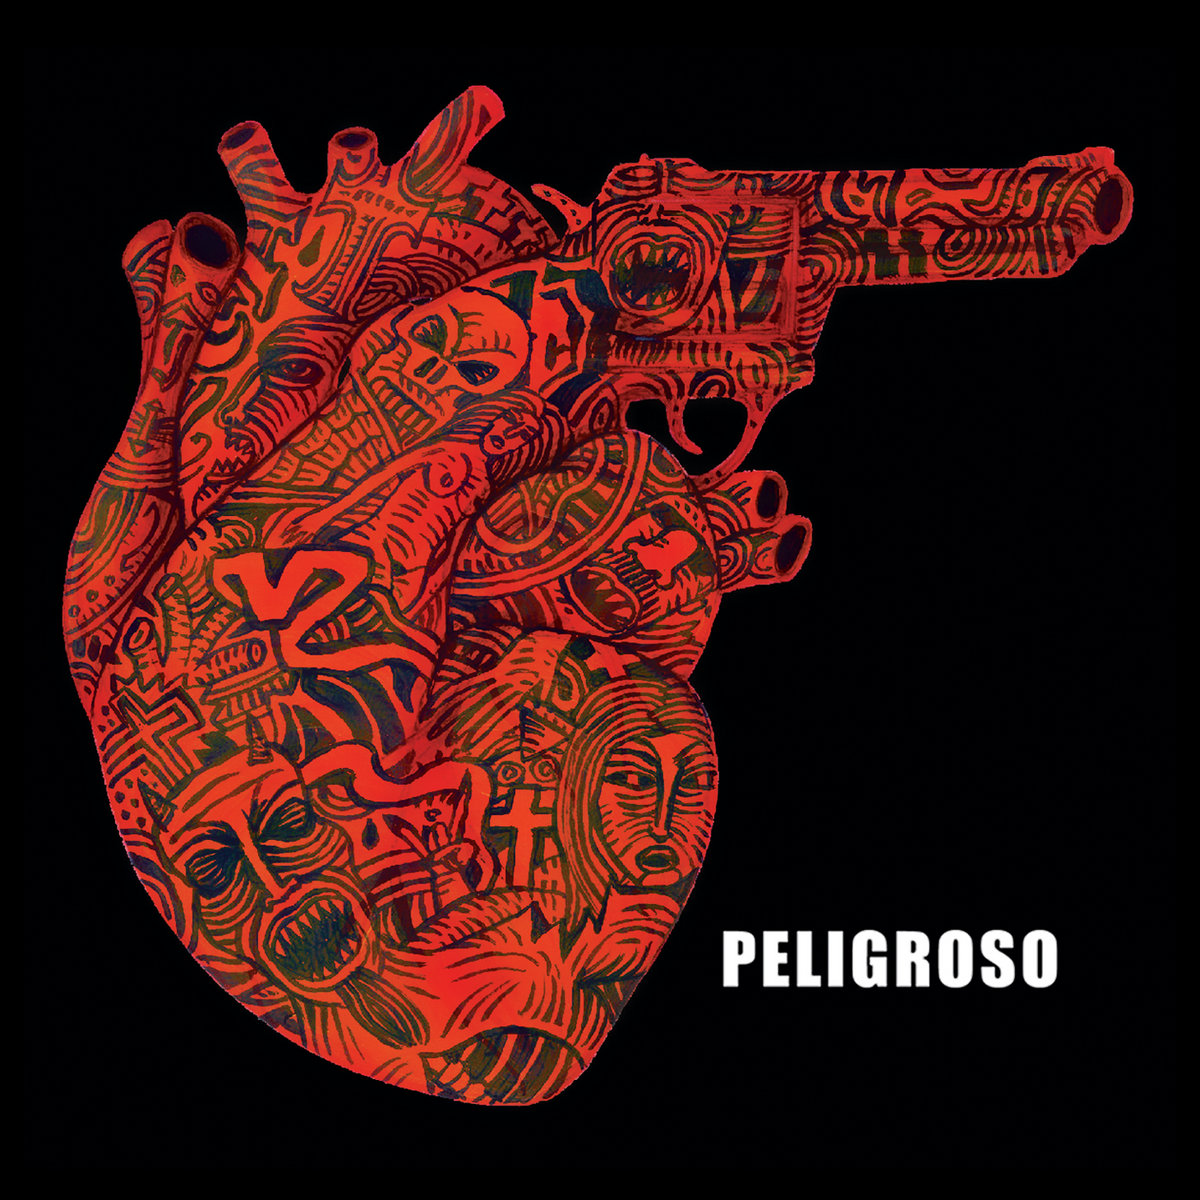 Peligroso Lms Records